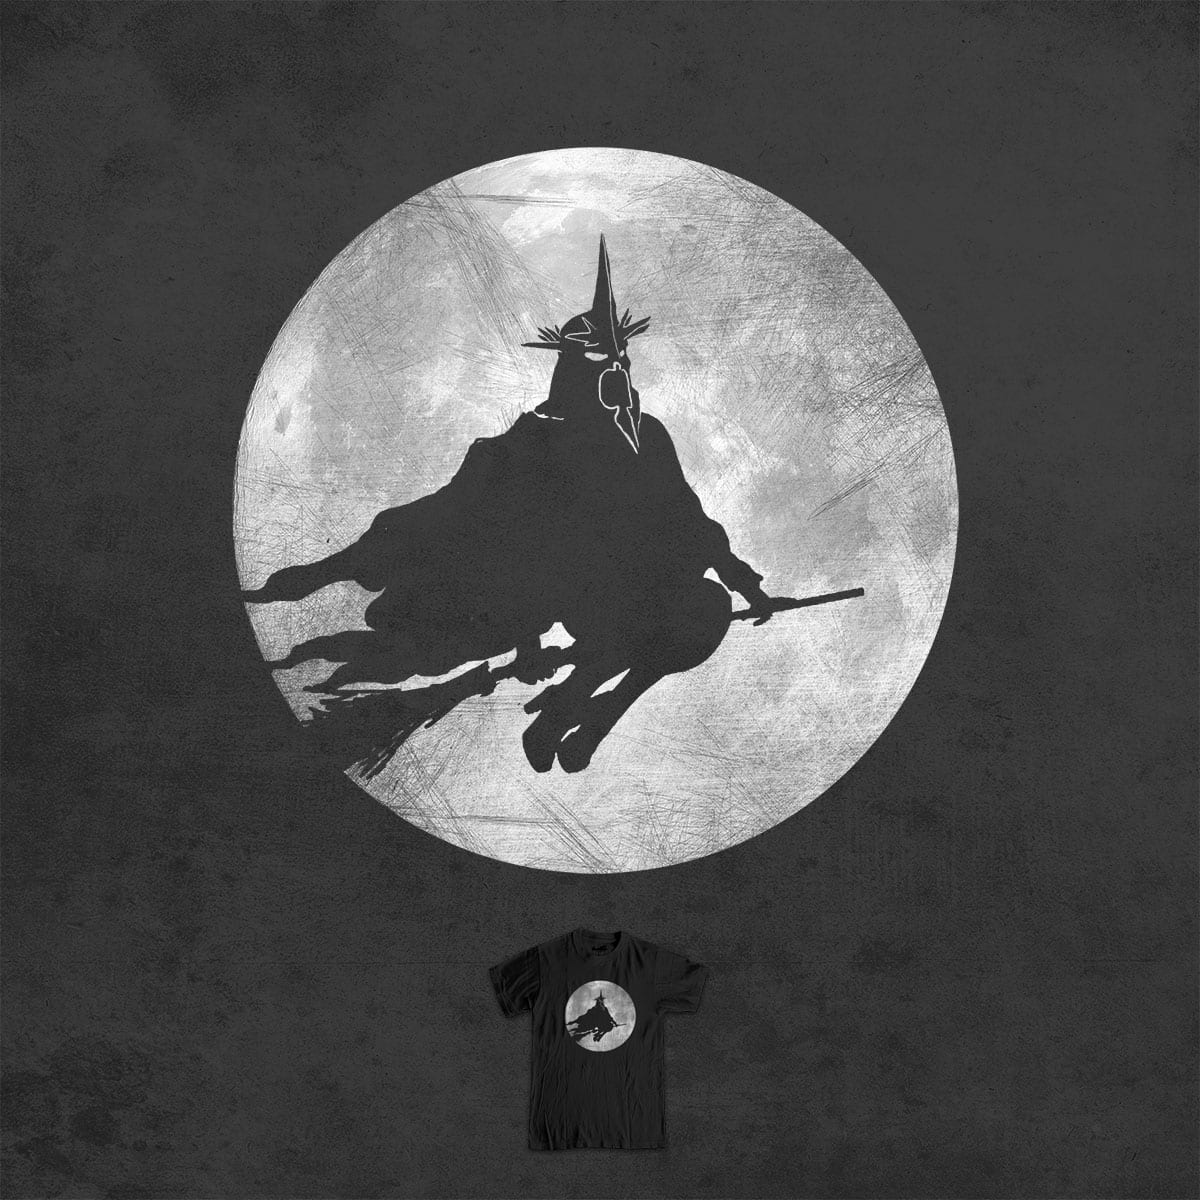 witchking by jerbing33 on Threadless